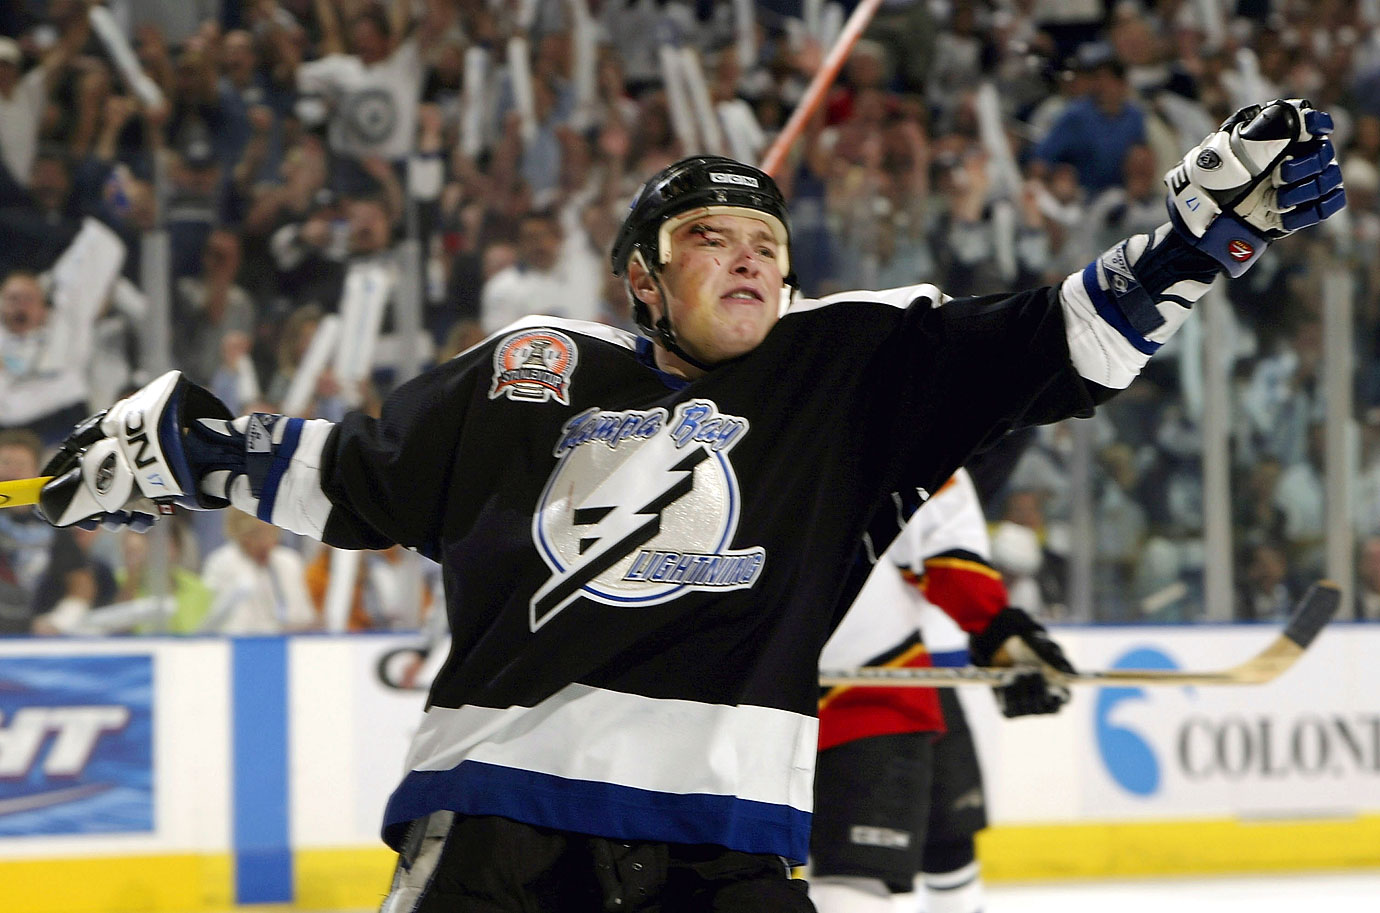 The Ukrainian winger spent only four seasons (2002-07) with the Bolts after being traded to Tampa Bay by Philadelphia but he earned his place in franchise lore by scoring a game-winner against Philadelphia in the Eastern Conference finals and the only goals in Tampa Bay's 2-0 Game 7 win over Calgary in the 2004 Stanley Cup finals.